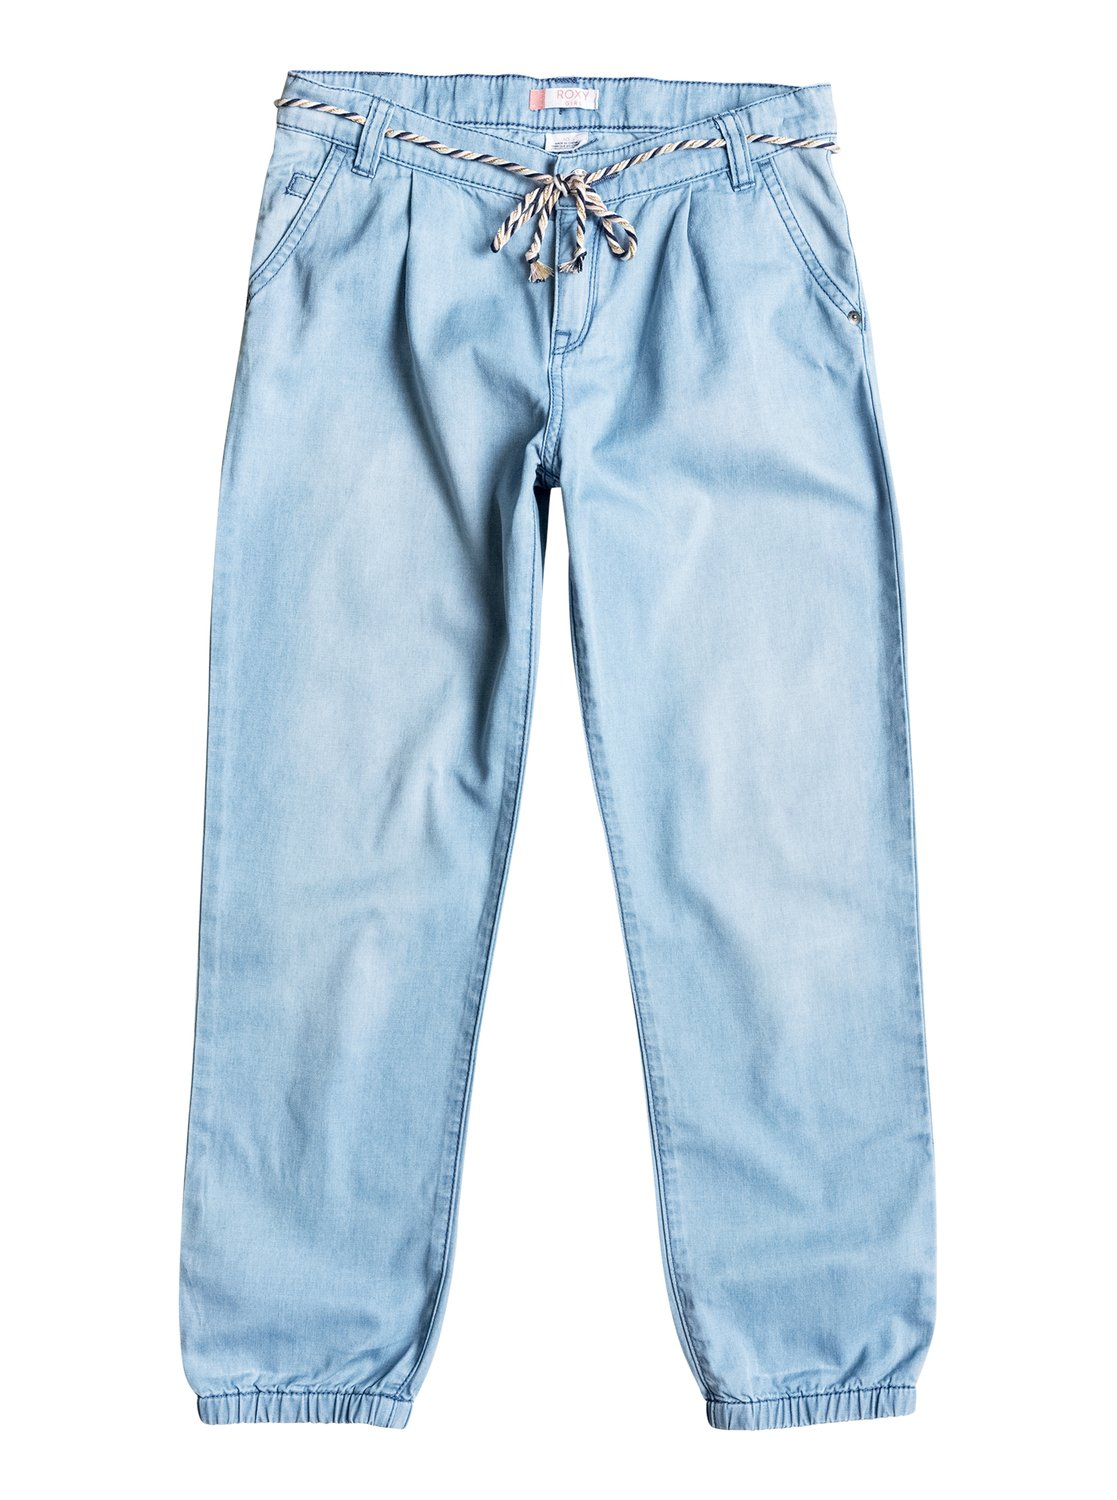 Dimming Light - Denim Joggers<br>